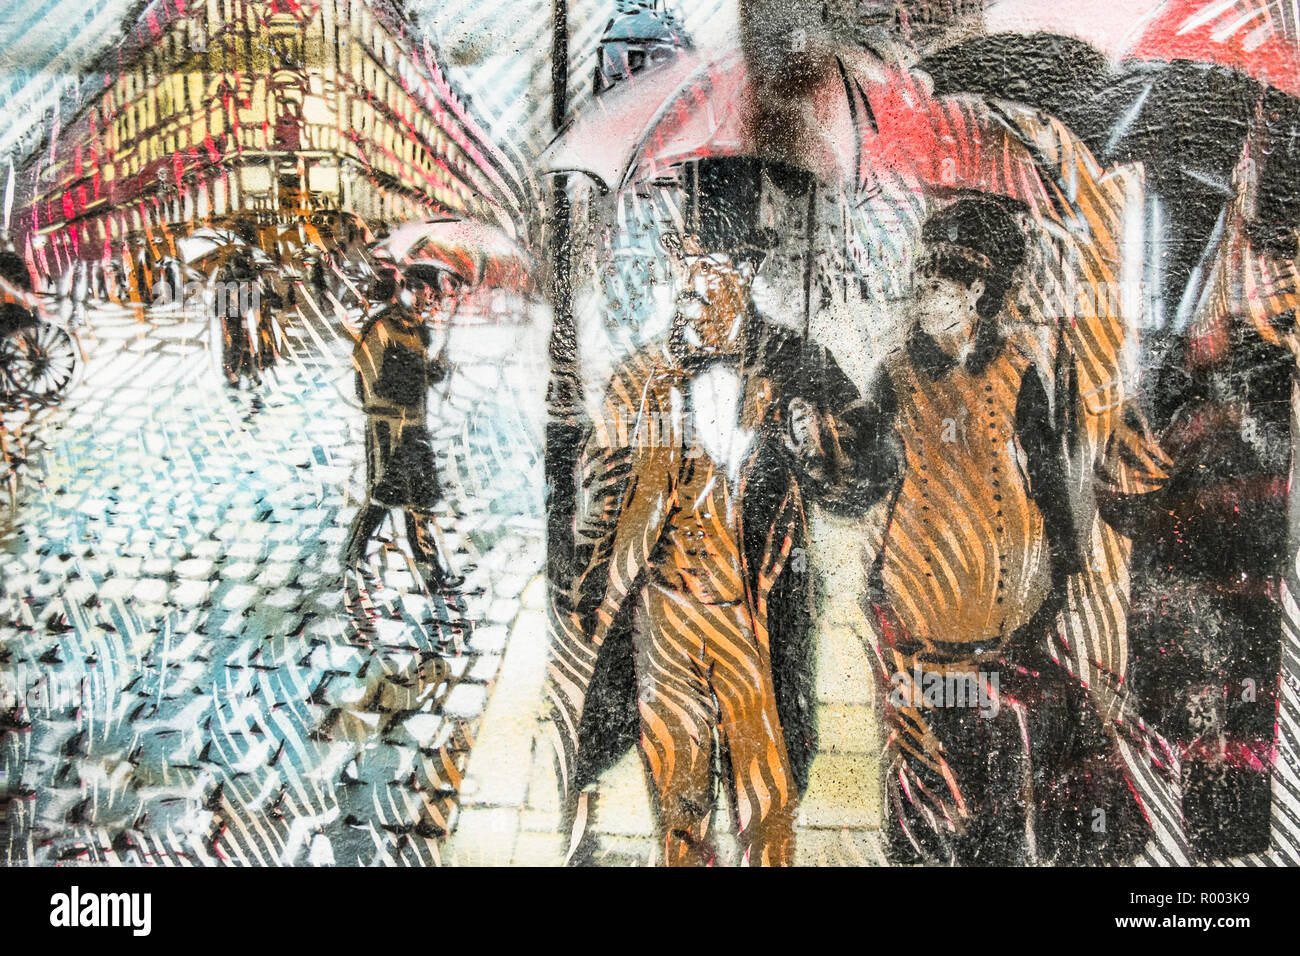 street art version of gustave caillebotte`s 'paris street , rainy day' - Stock Image